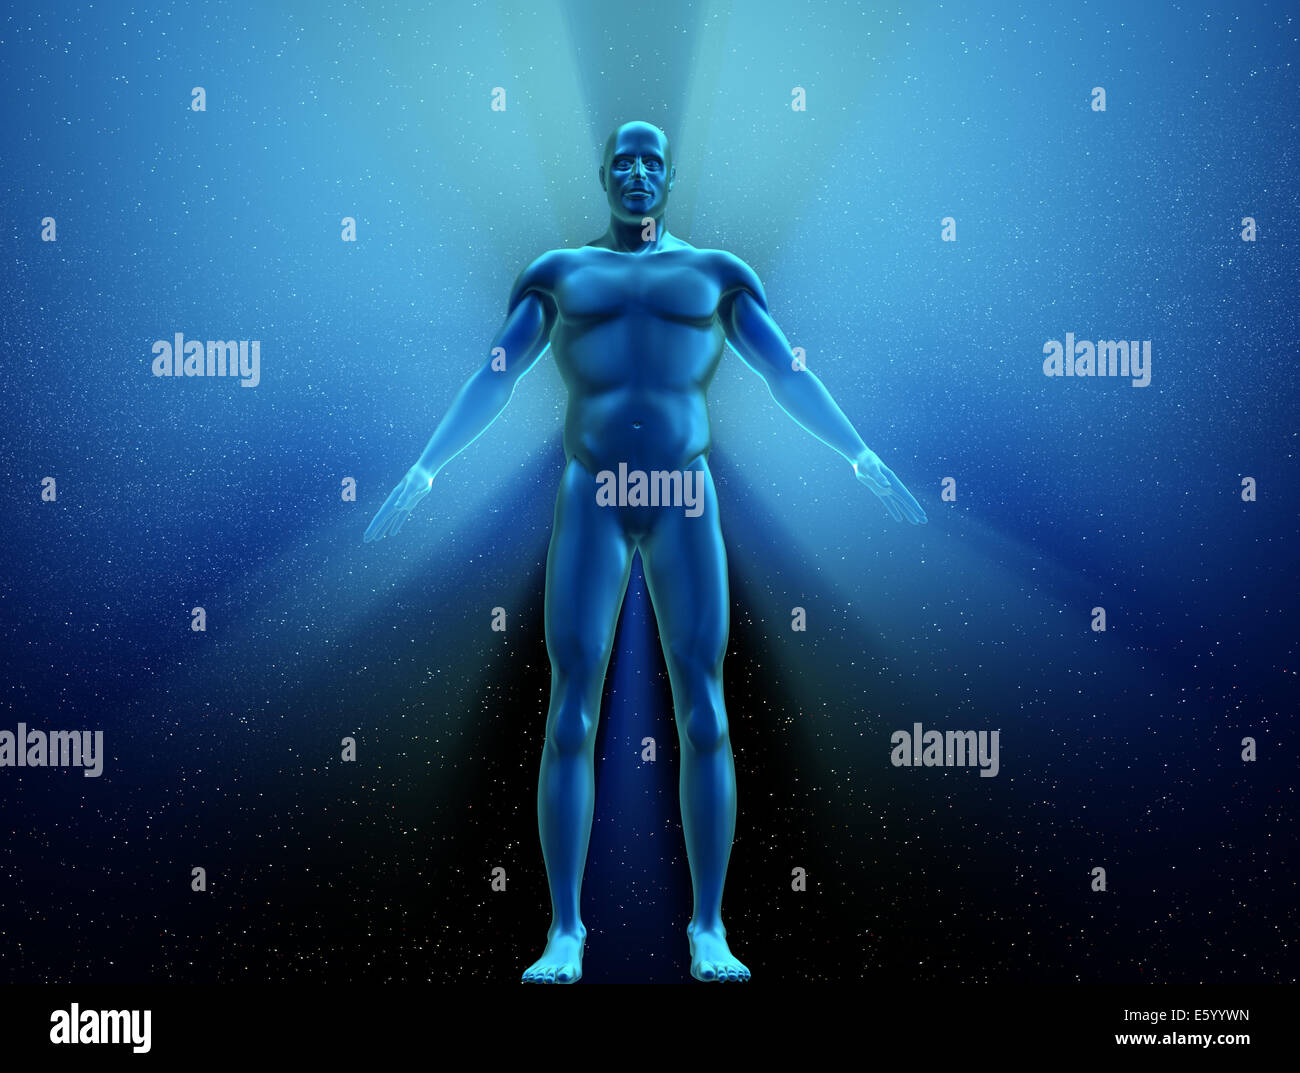 Human body with metallic appearance - 3d render - Stock Image